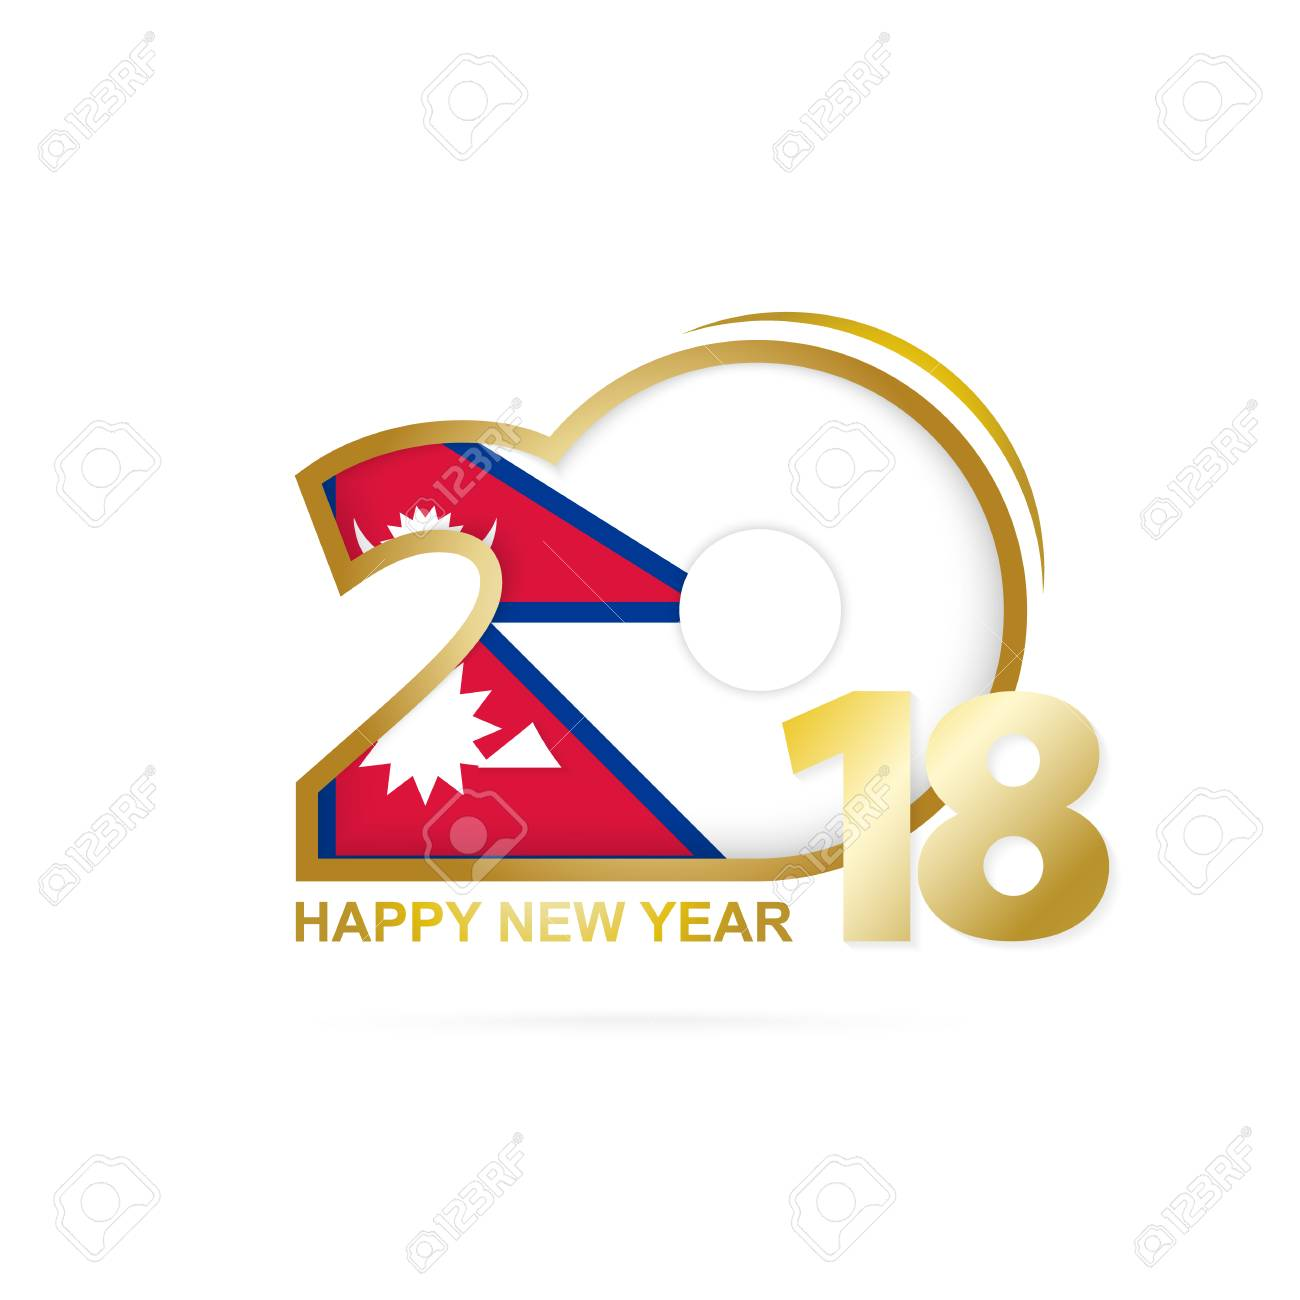 vector year 2018 with nepal flag pattern happy new year design vector illustration